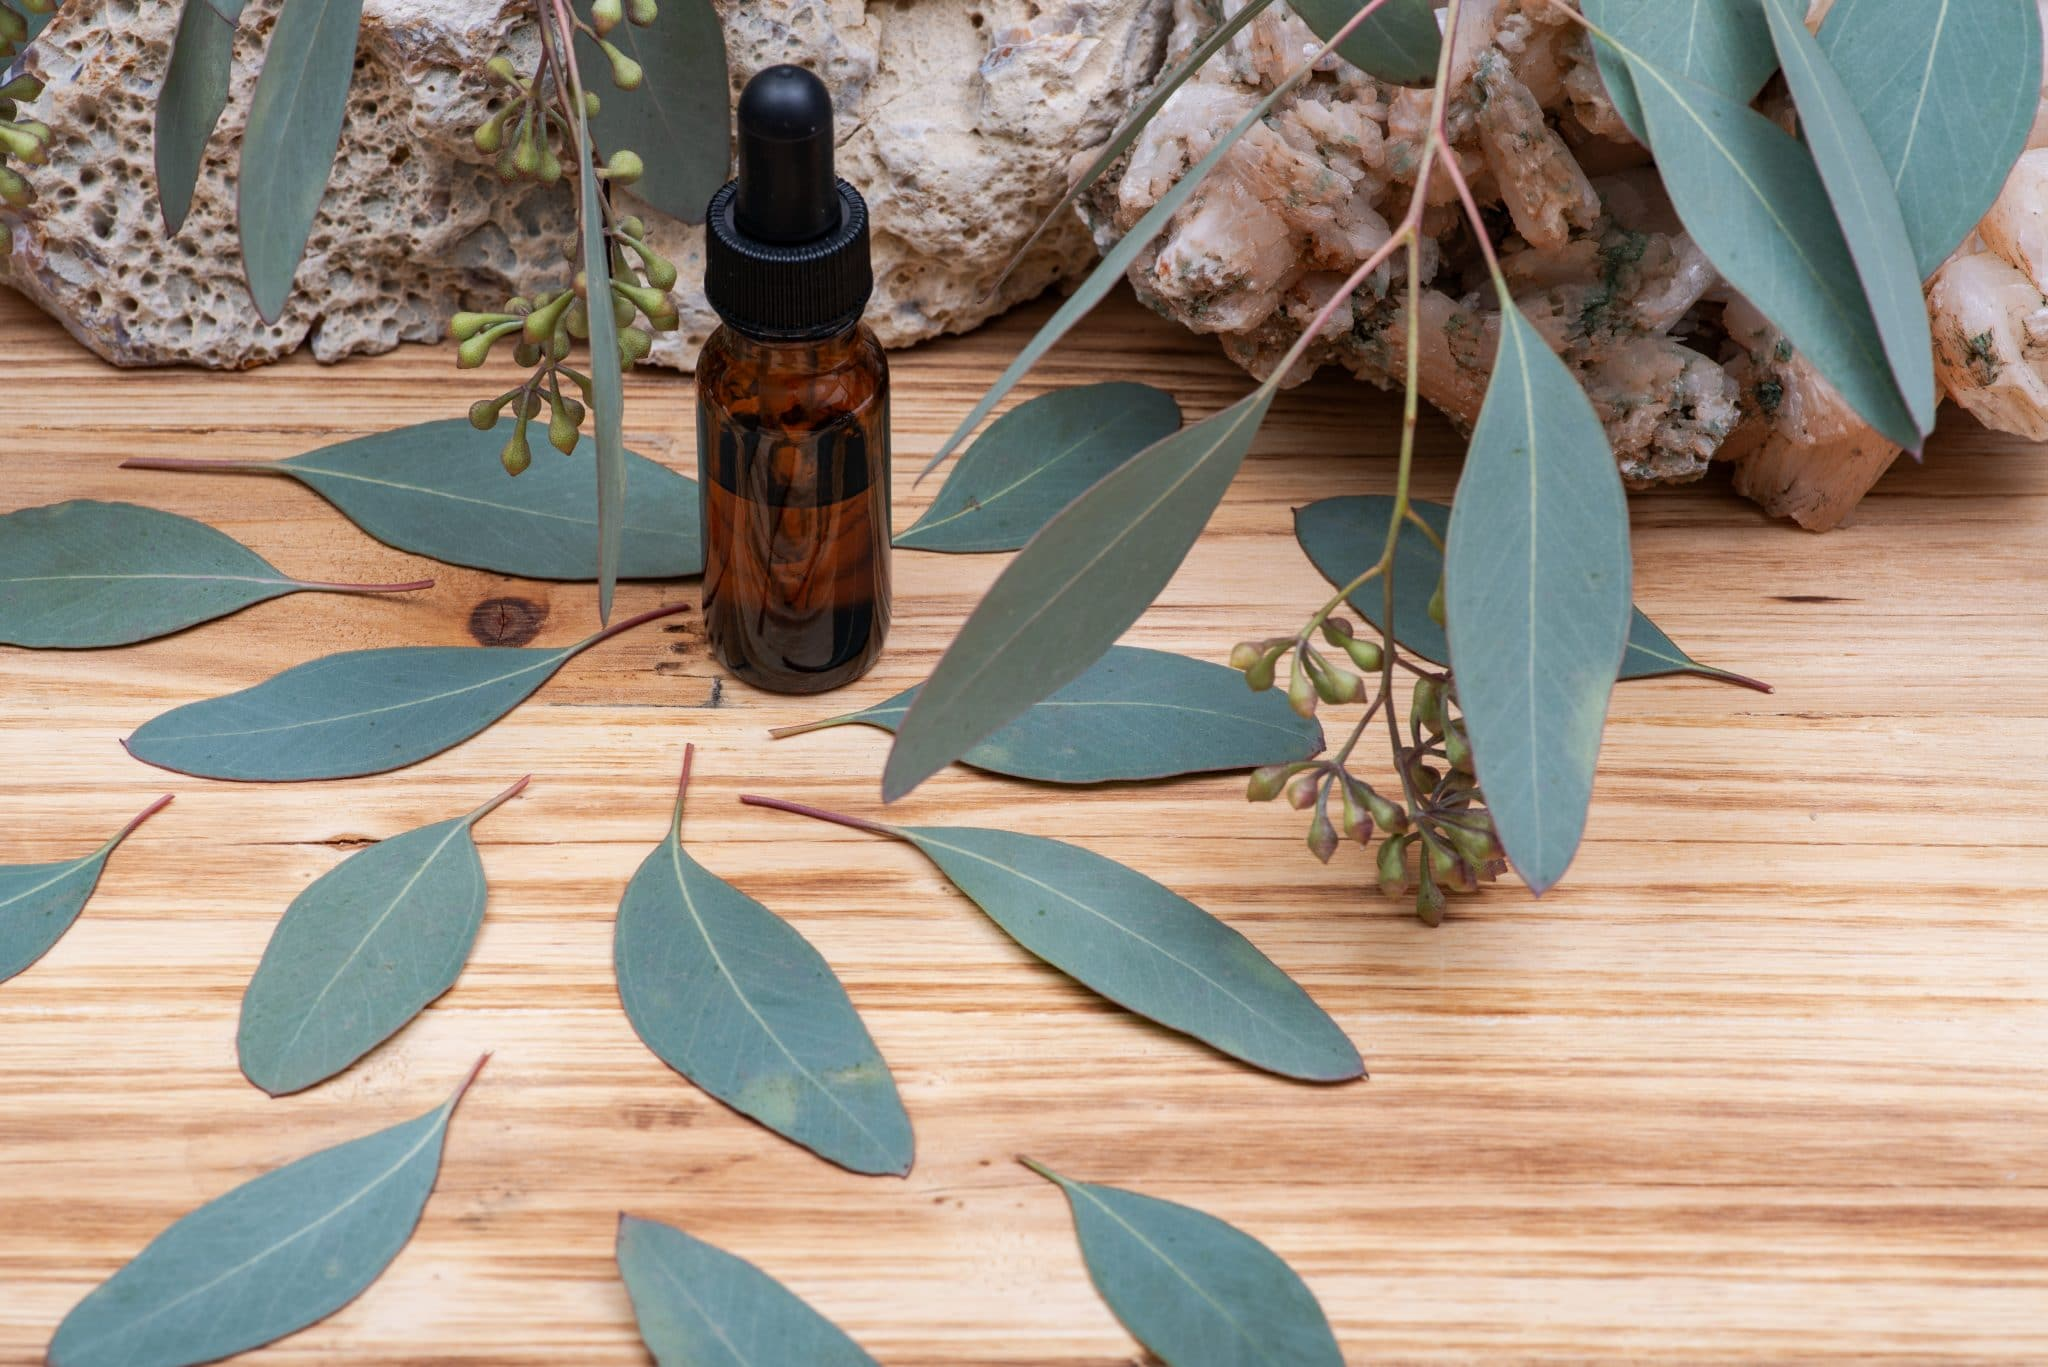 Eucalyptus Essential oil in Amber Round Glass Bottle with Glass Dropper and Fresh Eucalyptus leaves on wooden background. Phytotherapy.